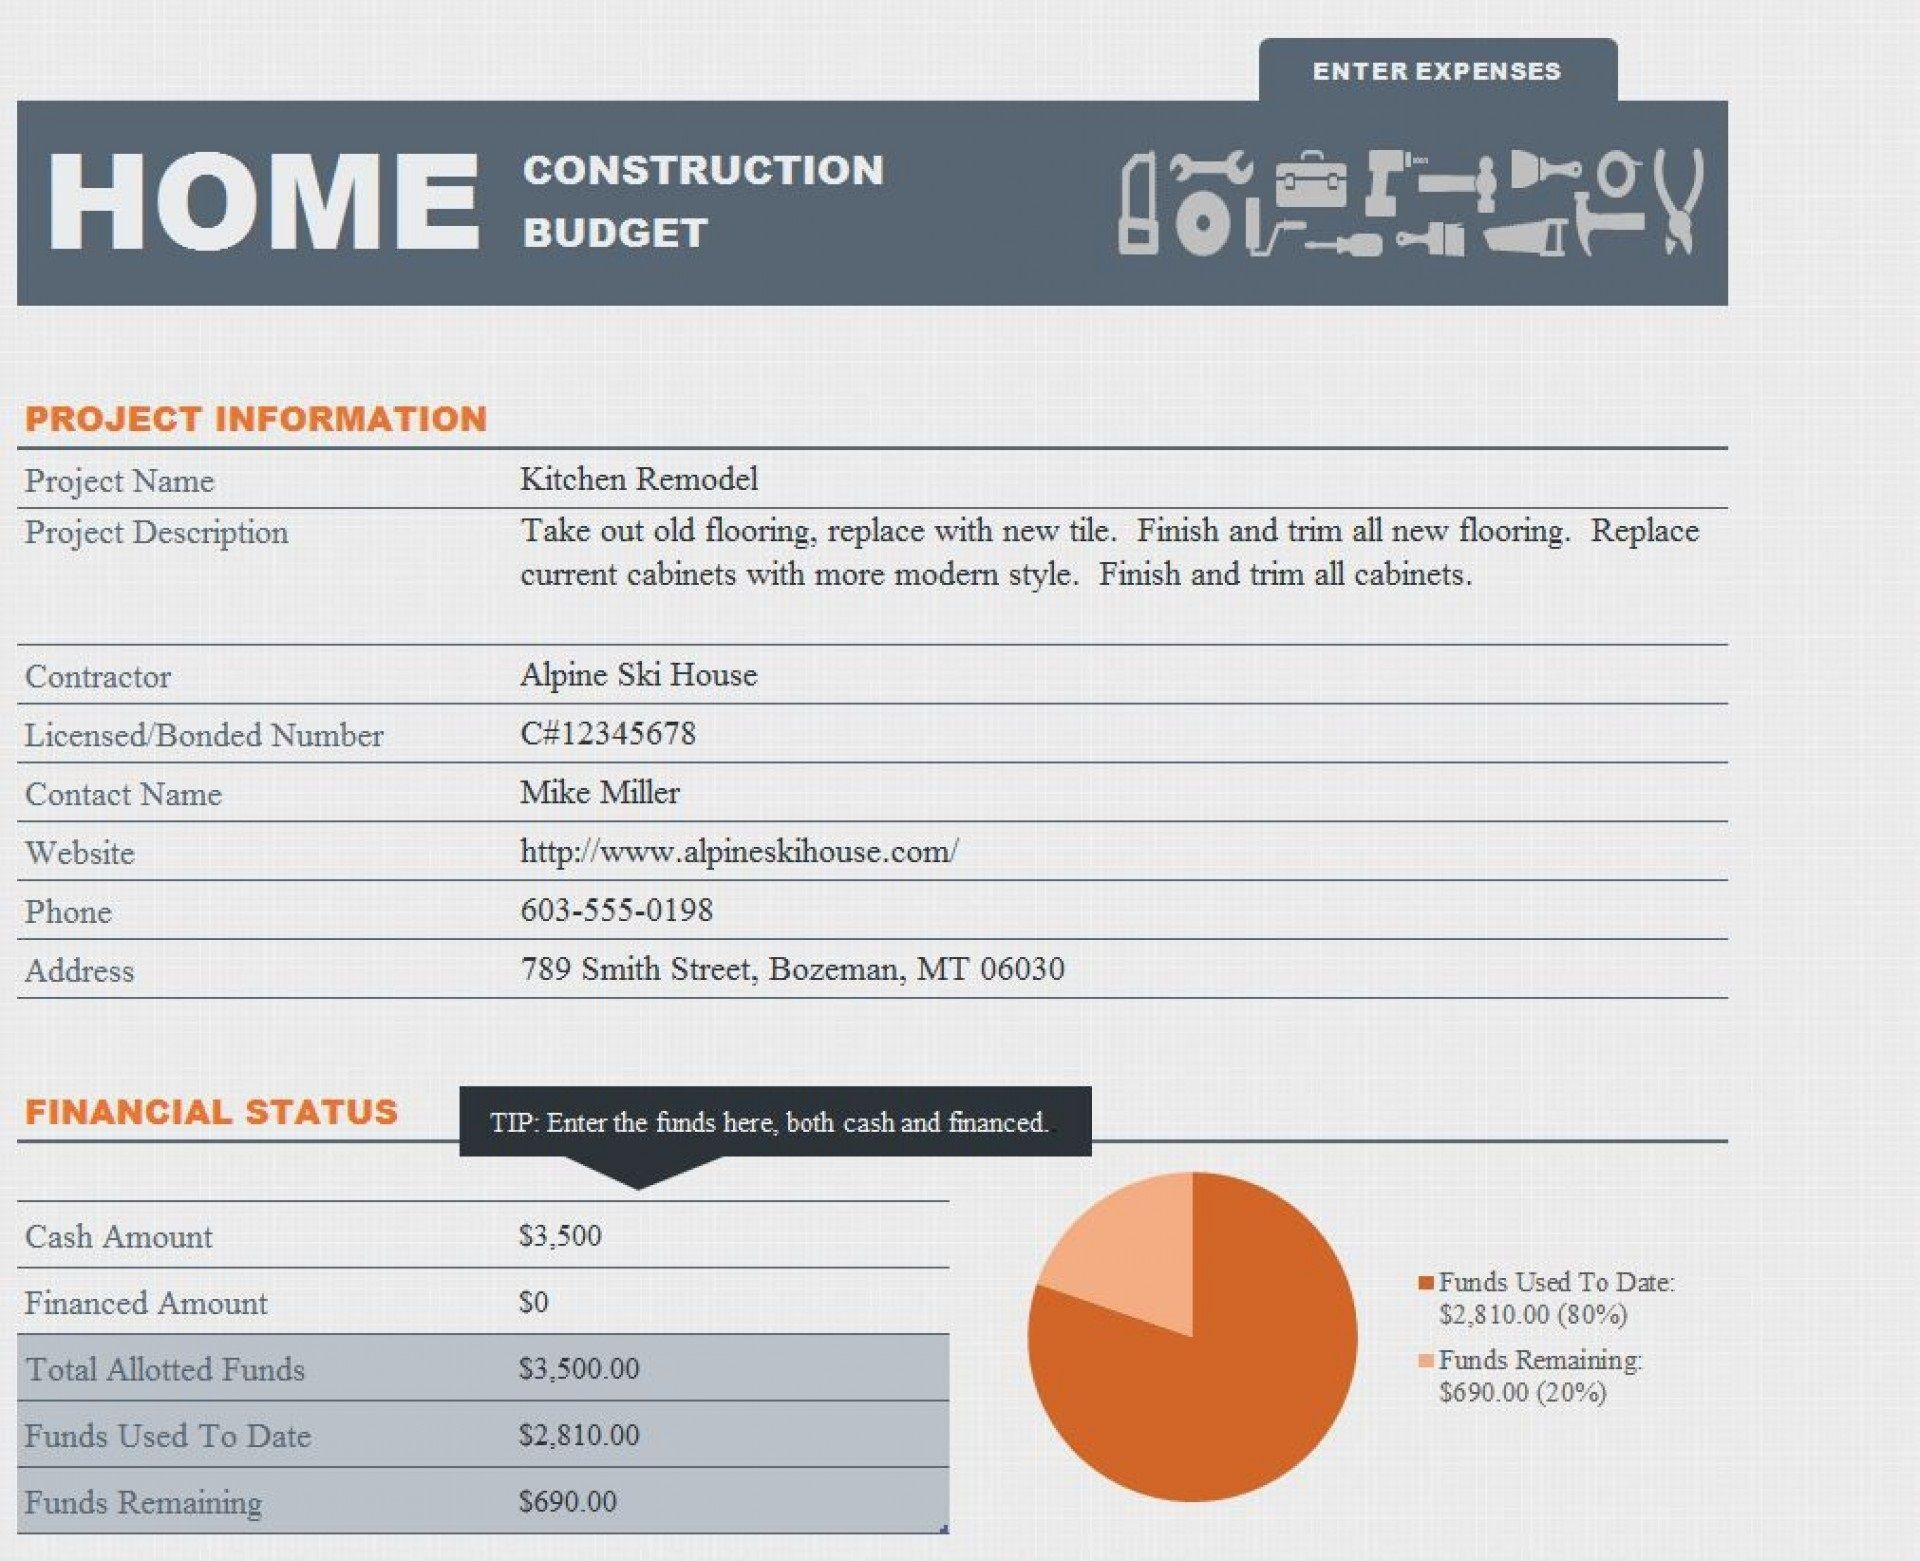 009 Incredible Microsoft Excel Home Renovation Budget Template Image 1920